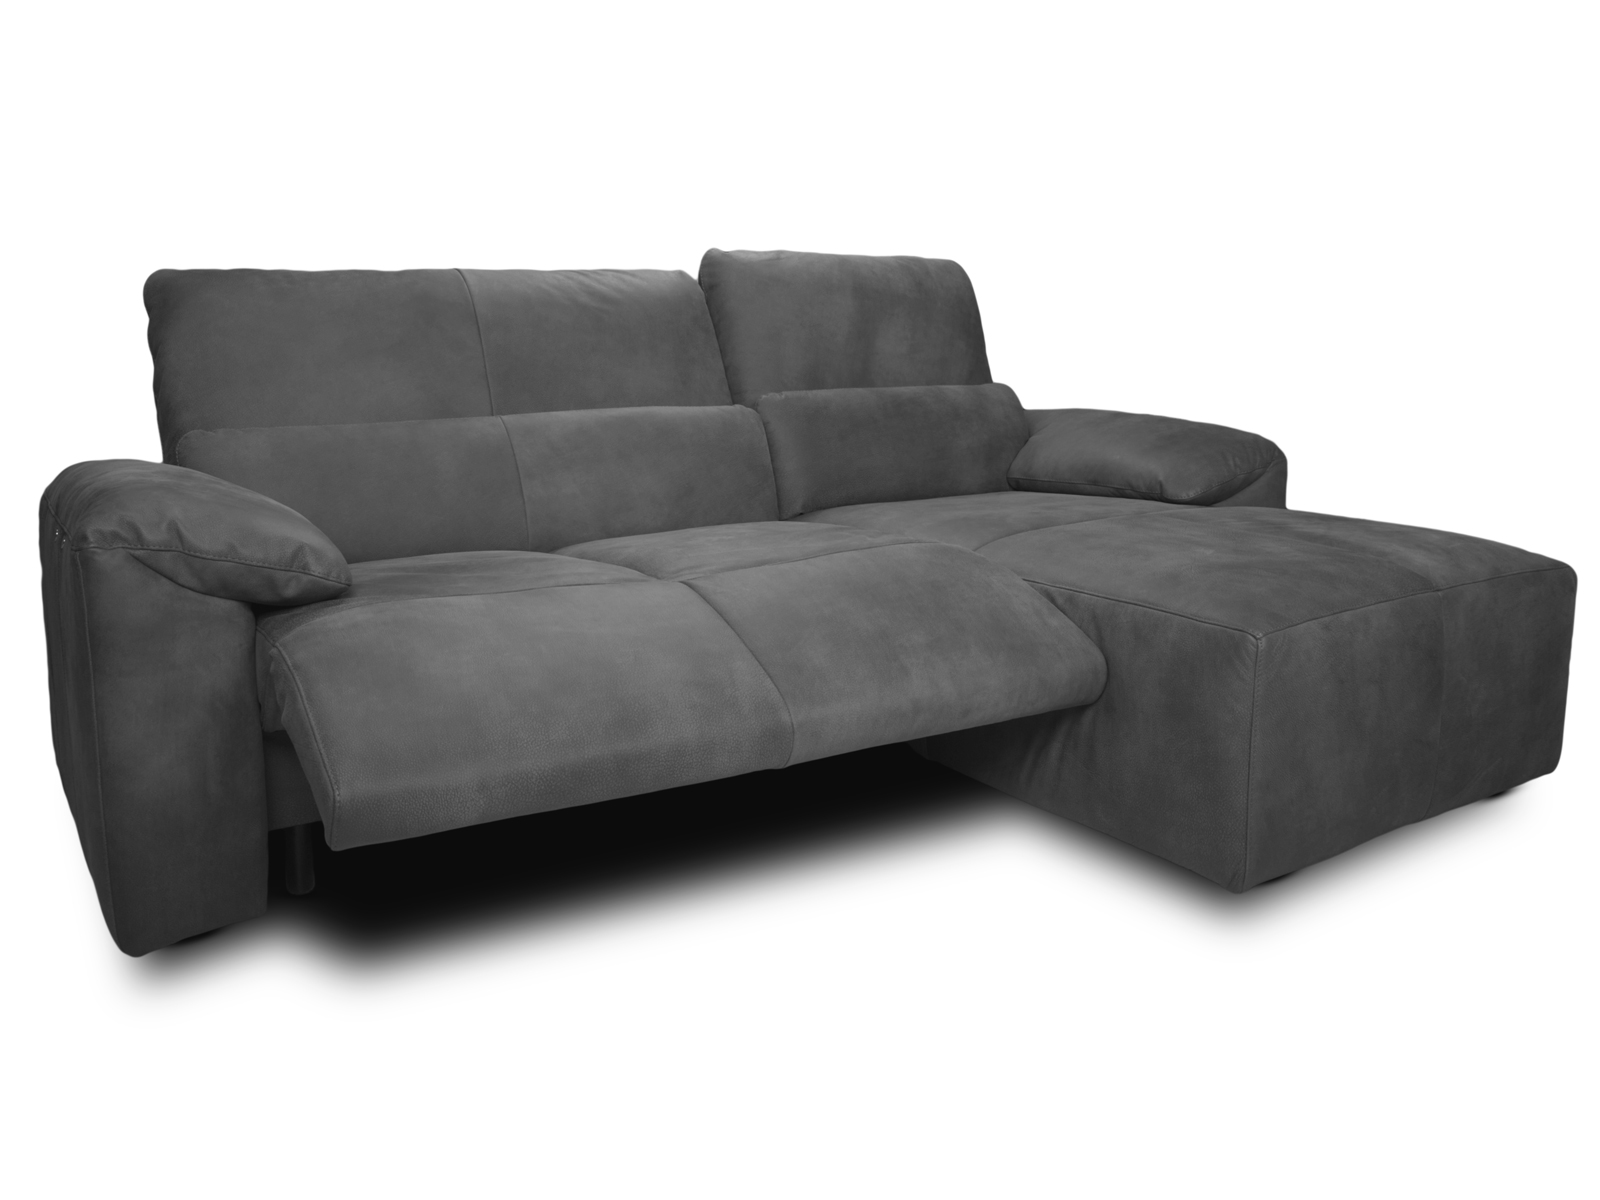 ecksofa silverstone sofa dunkelgrau wahlweise mit. Black Bedroom Furniture Sets. Home Design Ideas